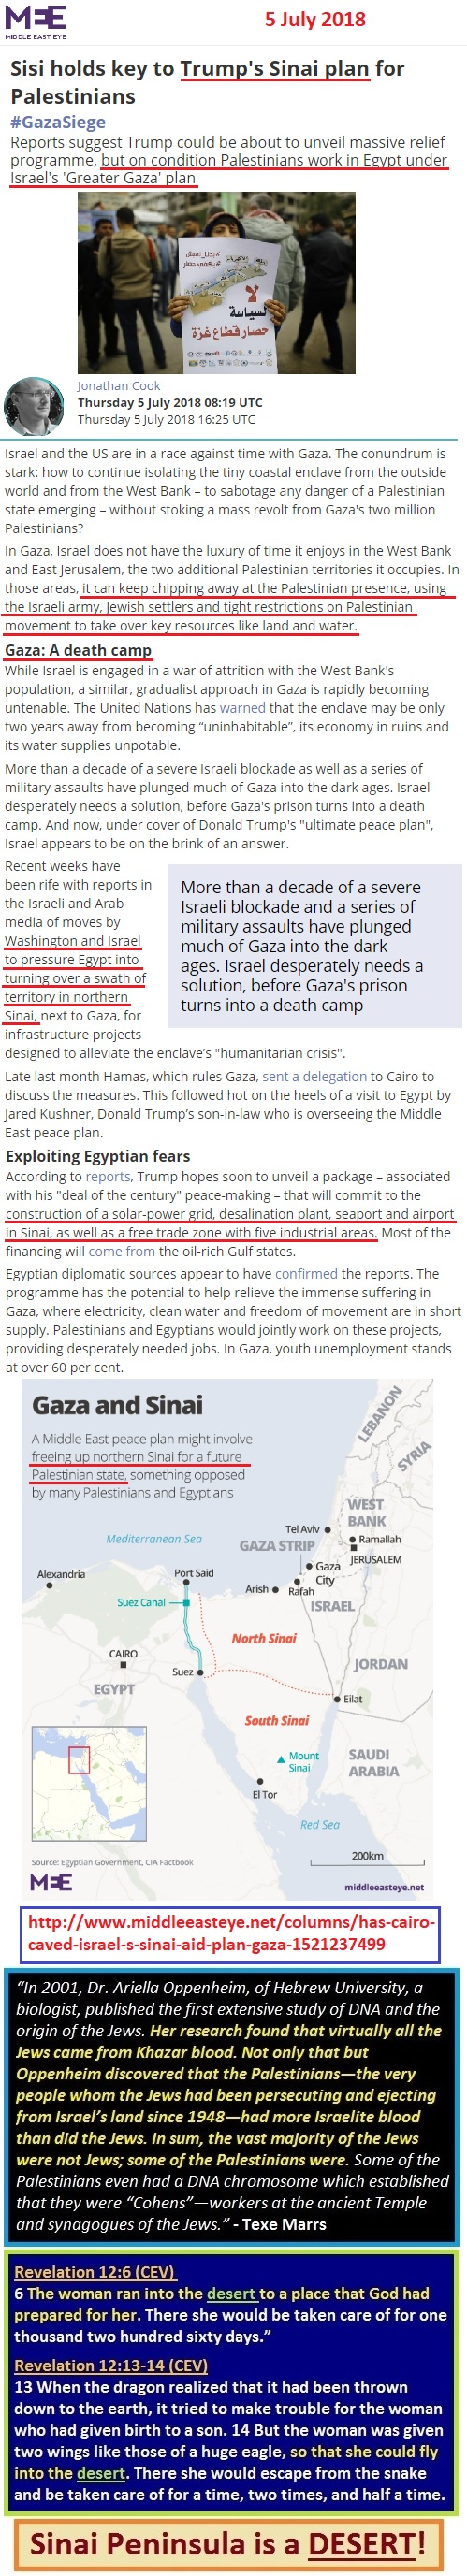 https://www.middleeasteye.net/opinion/sisi-holds-key-trumps-sinai-plan-palestinians